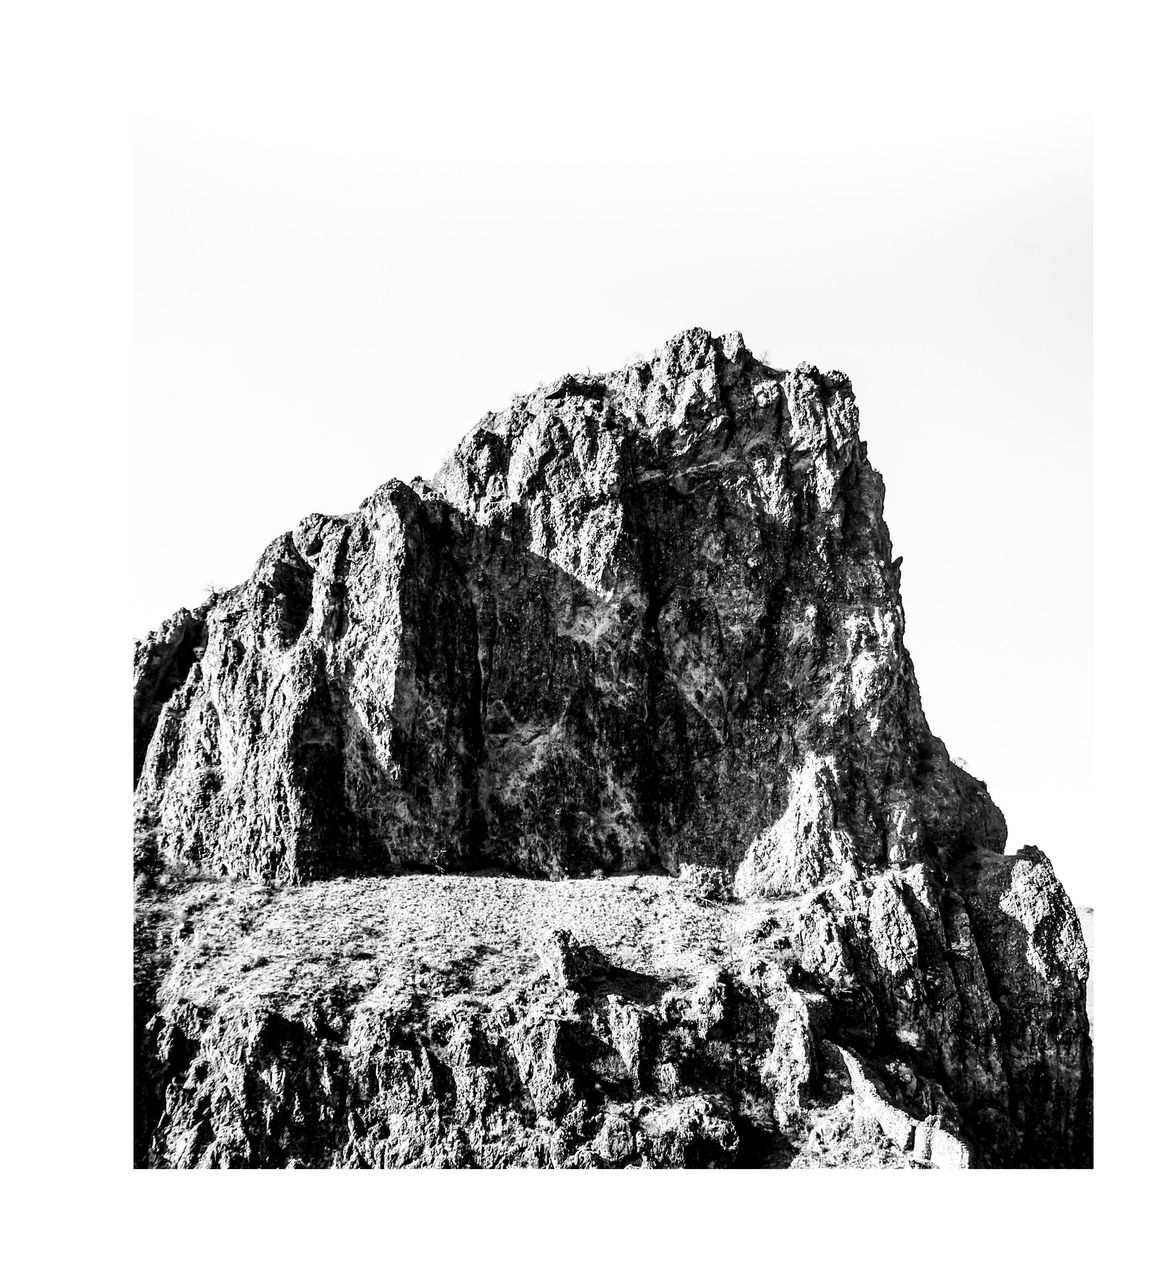 rock - object, rock formation, rock, rough, clear sky, nature, cliff, mountain, no people, textured, outdoors, scenics, day, beauty in nature, sky, white background, sea